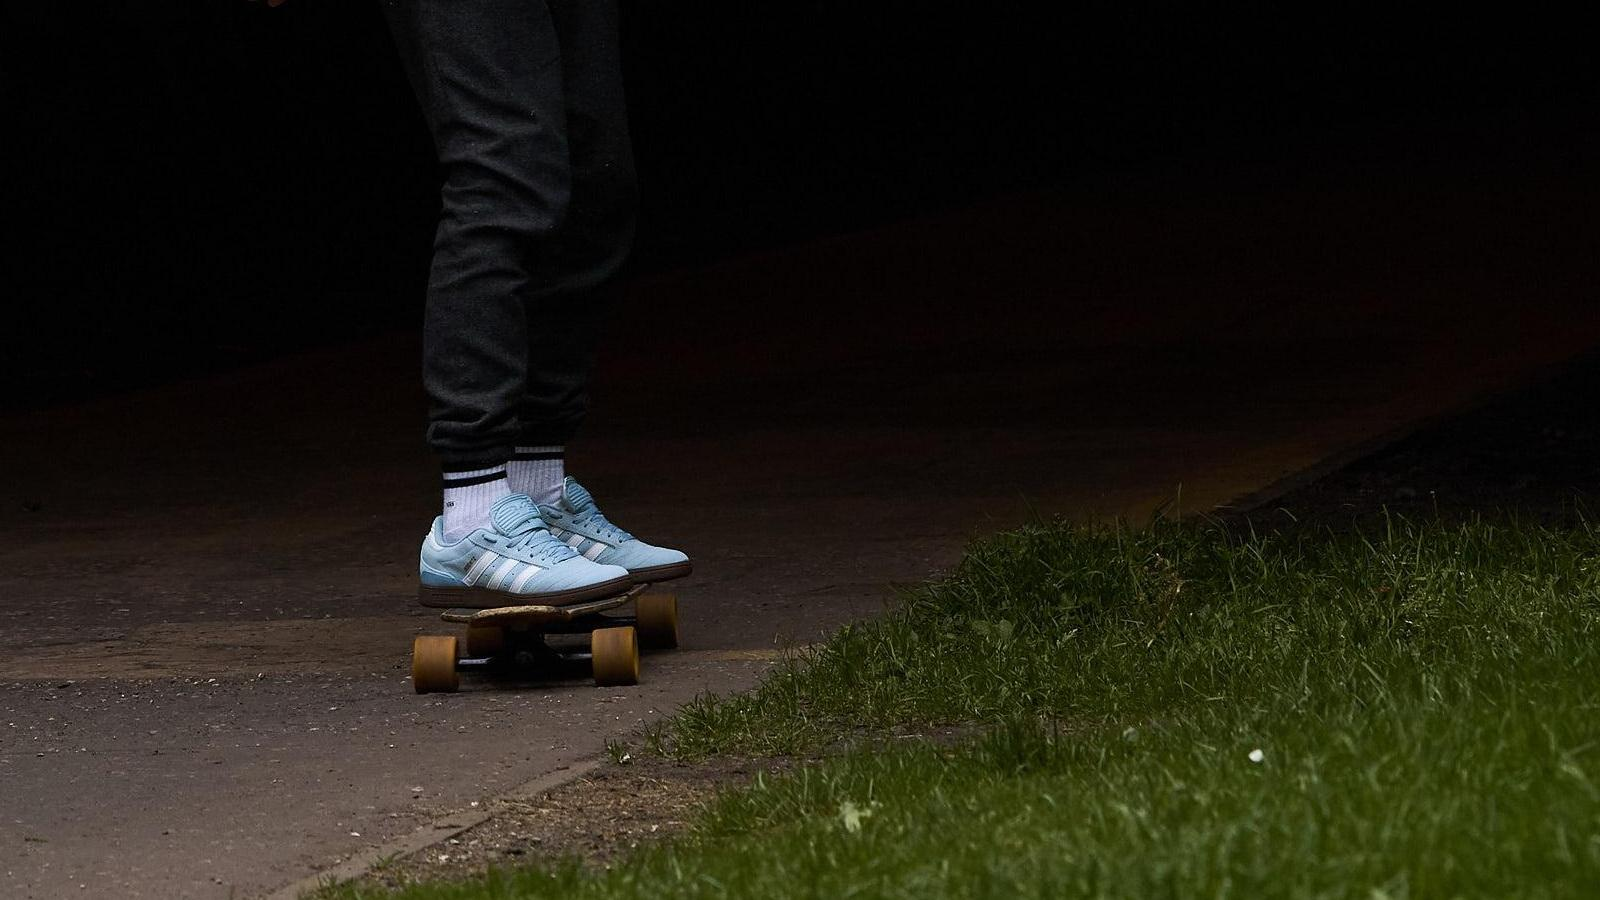 10 Best Adidas Skate Shoes in 2021